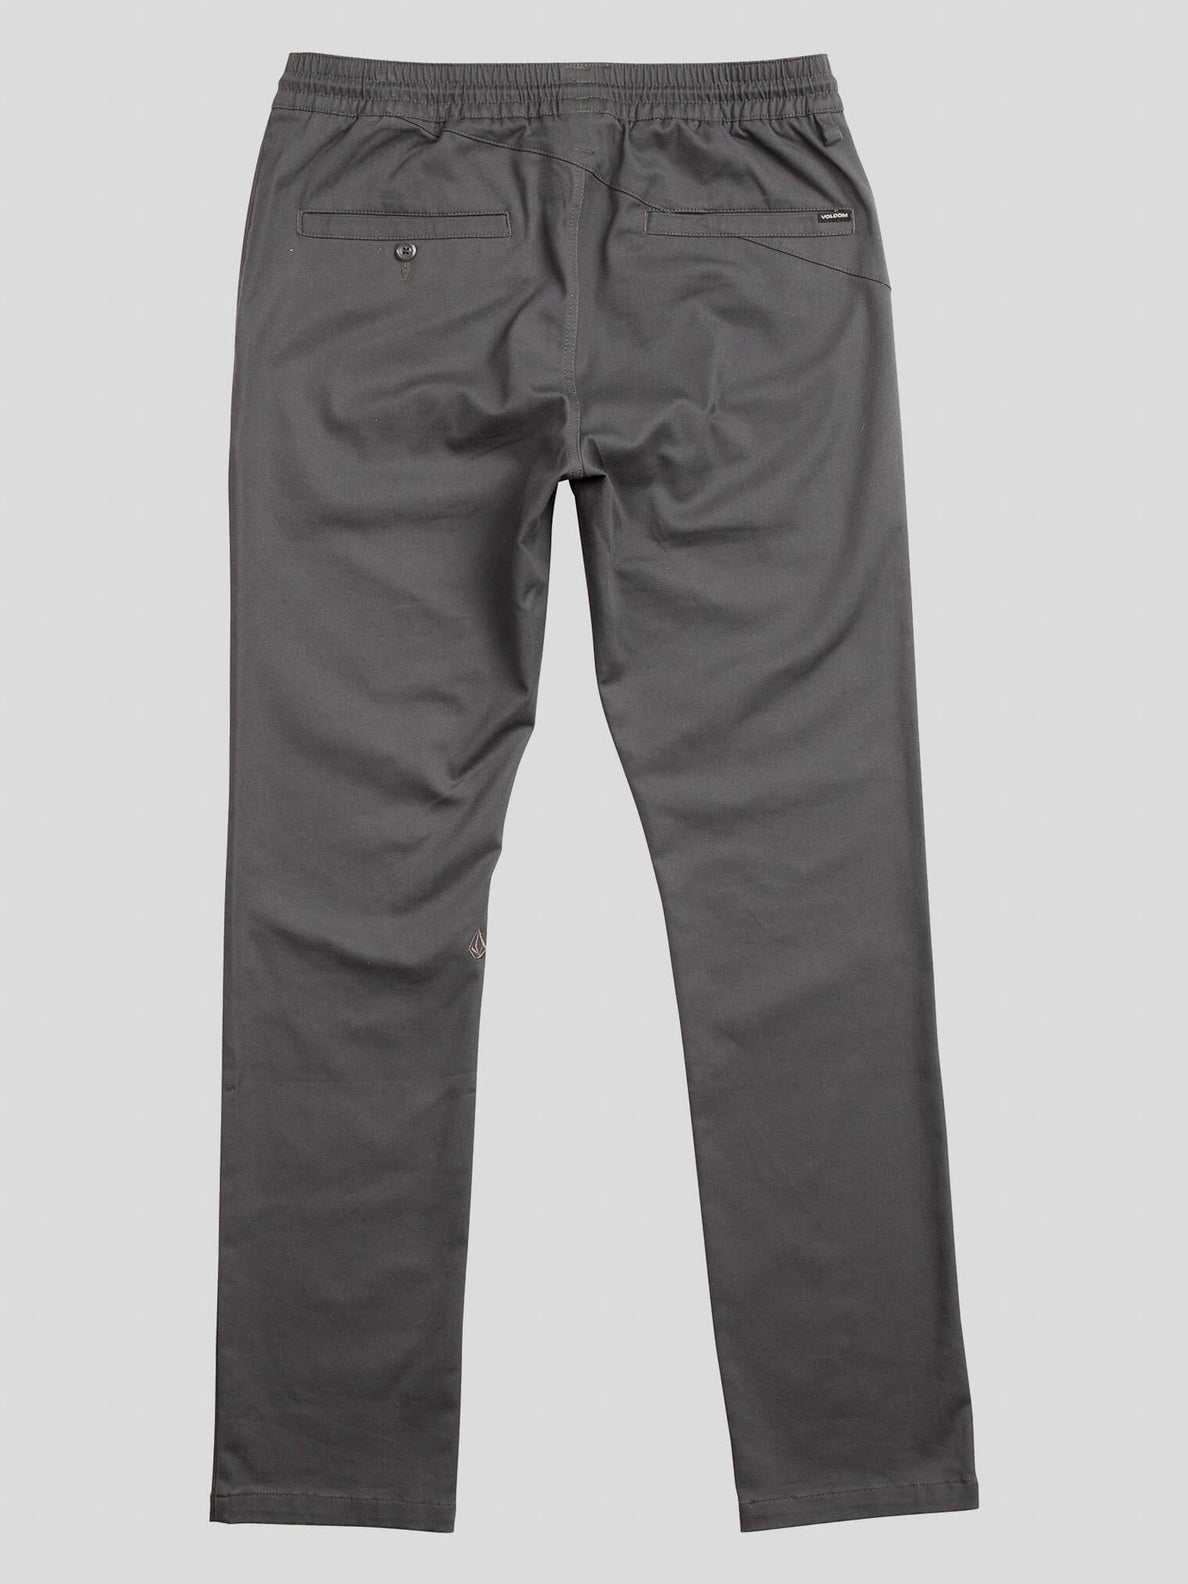 Frickin Comfort Chino Pants In Charcoal Grey, Fourth Alternate View